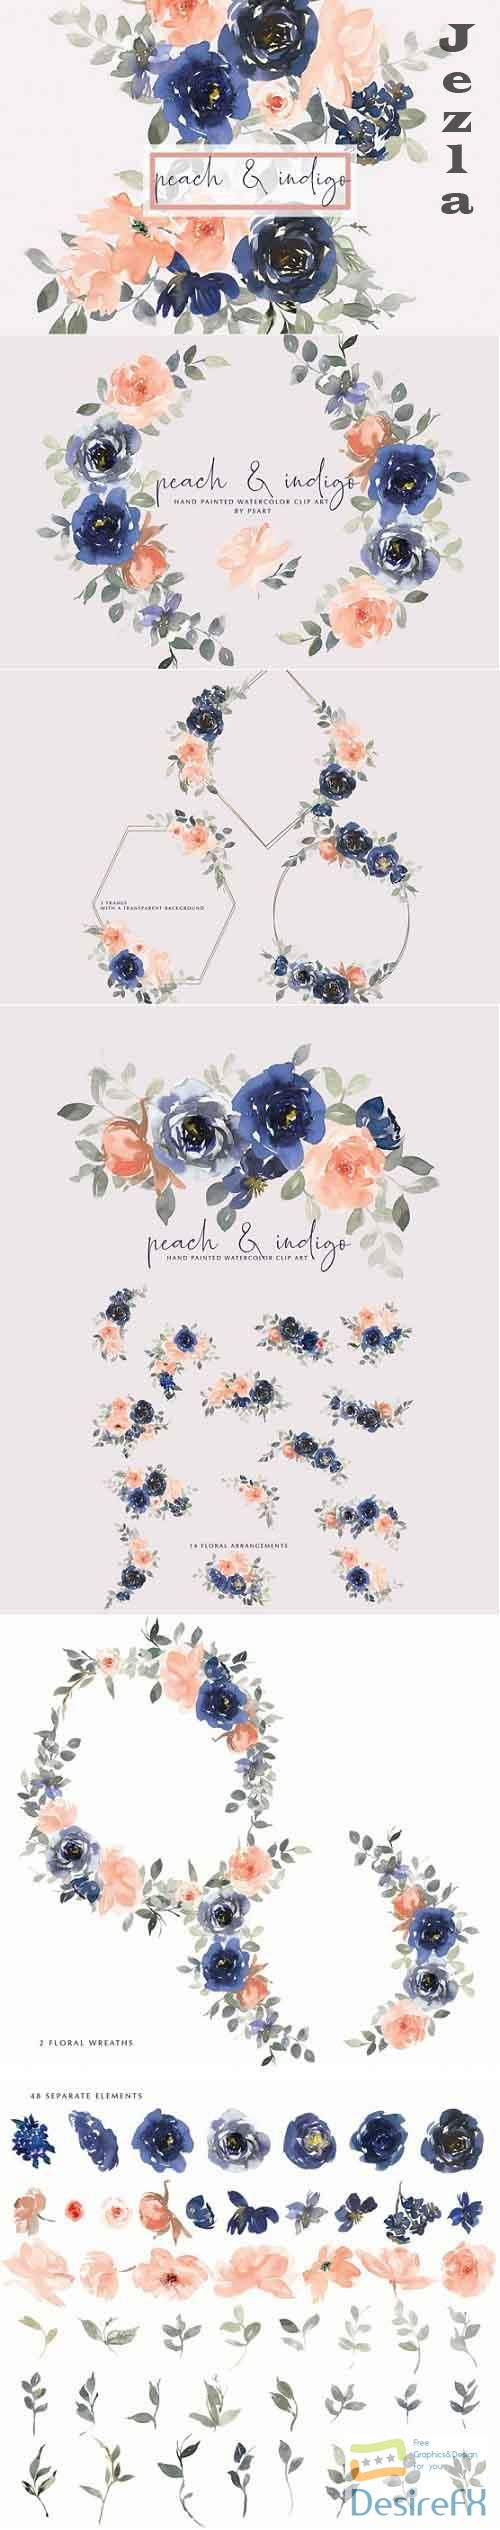 Watercolor Indigo and Peach Floral Bouquet Clipart - 661647